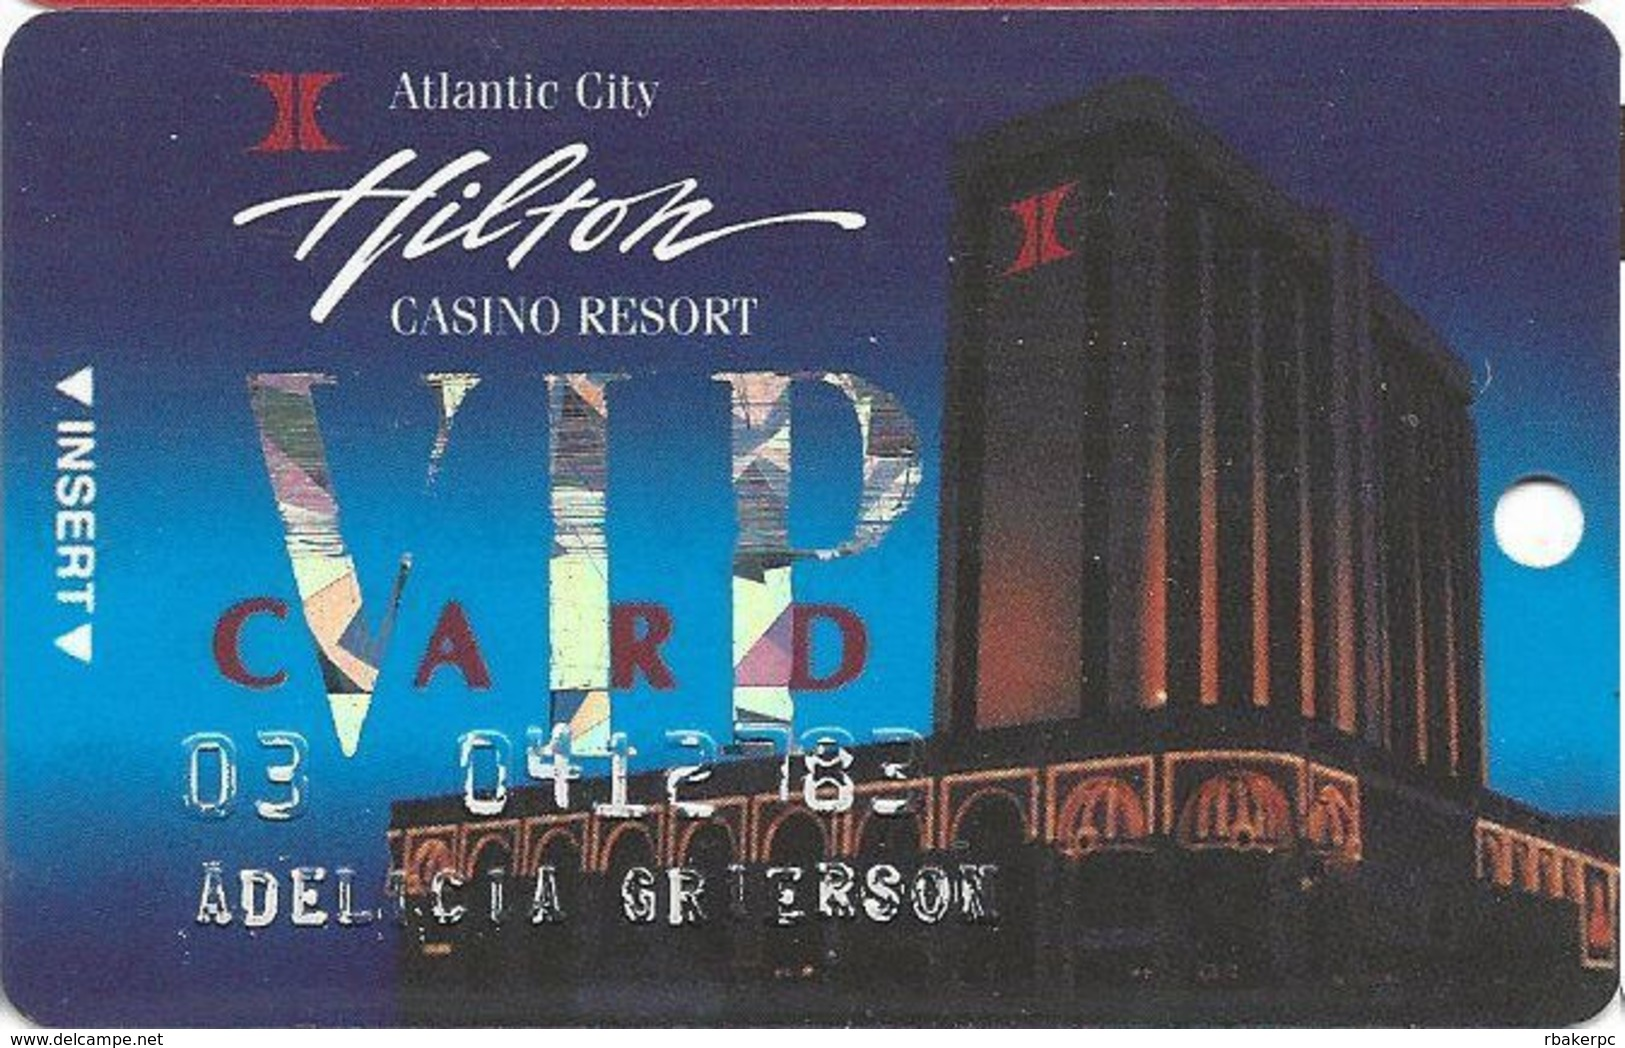 Atlantic City Hilton Casino - 1st Issue Slot Card - 3rd Line Reverse Has Bally's Park Place Only - Casino Cards